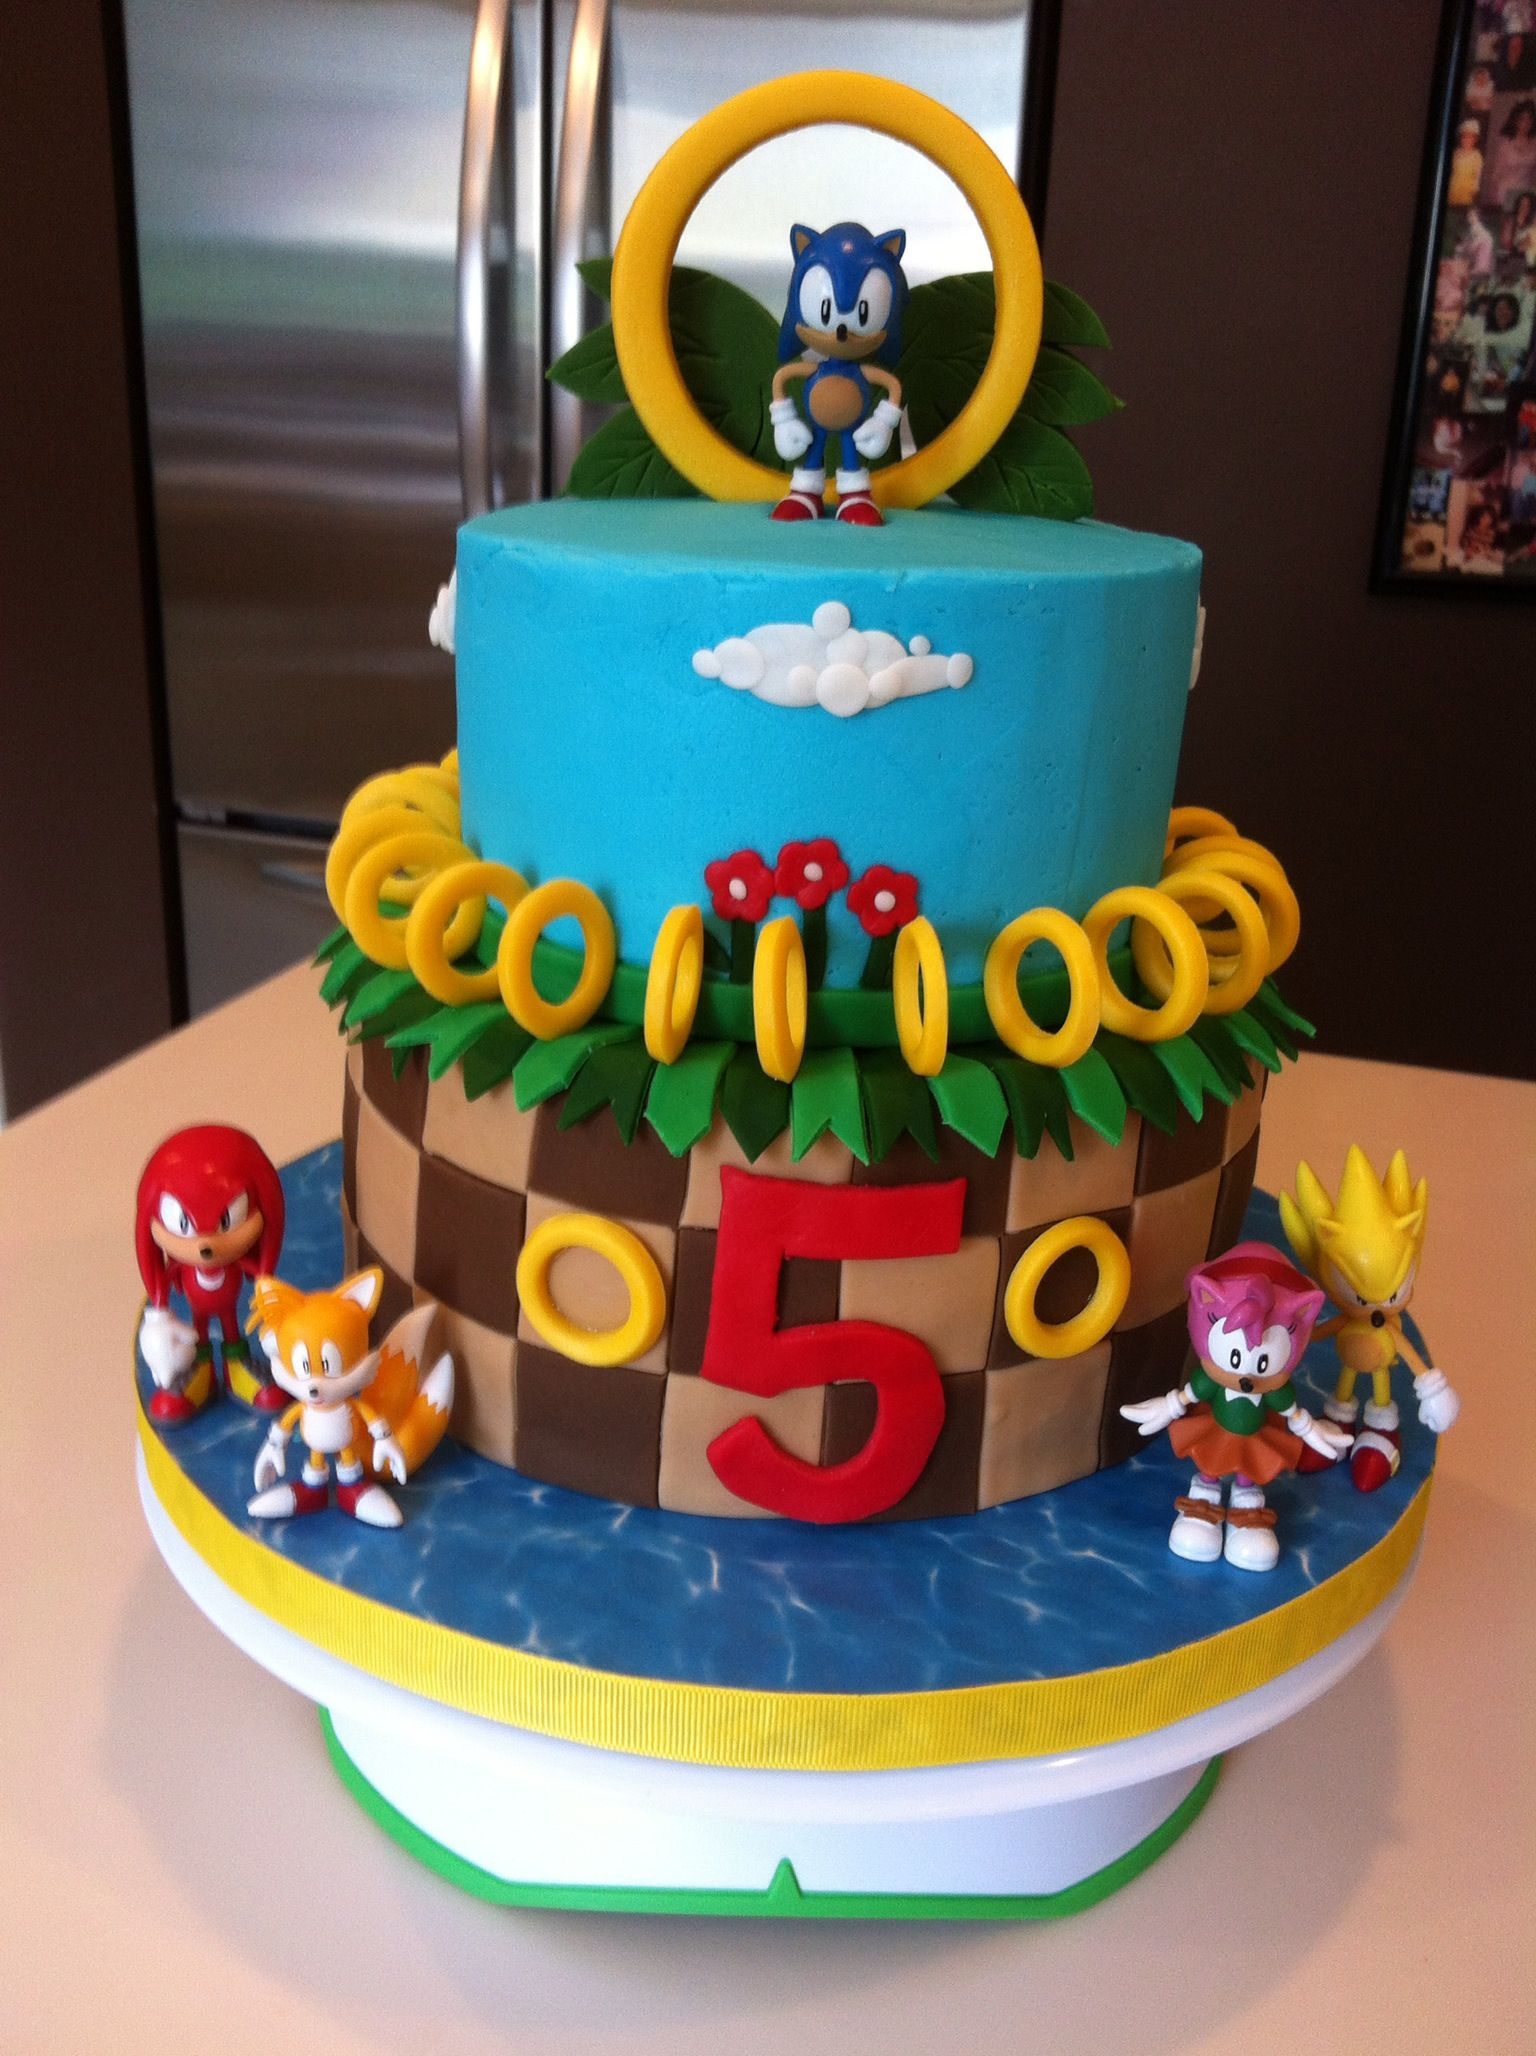 Josh Wants A Sonic The Hedgehog Cake Suzanne Grimes With Images